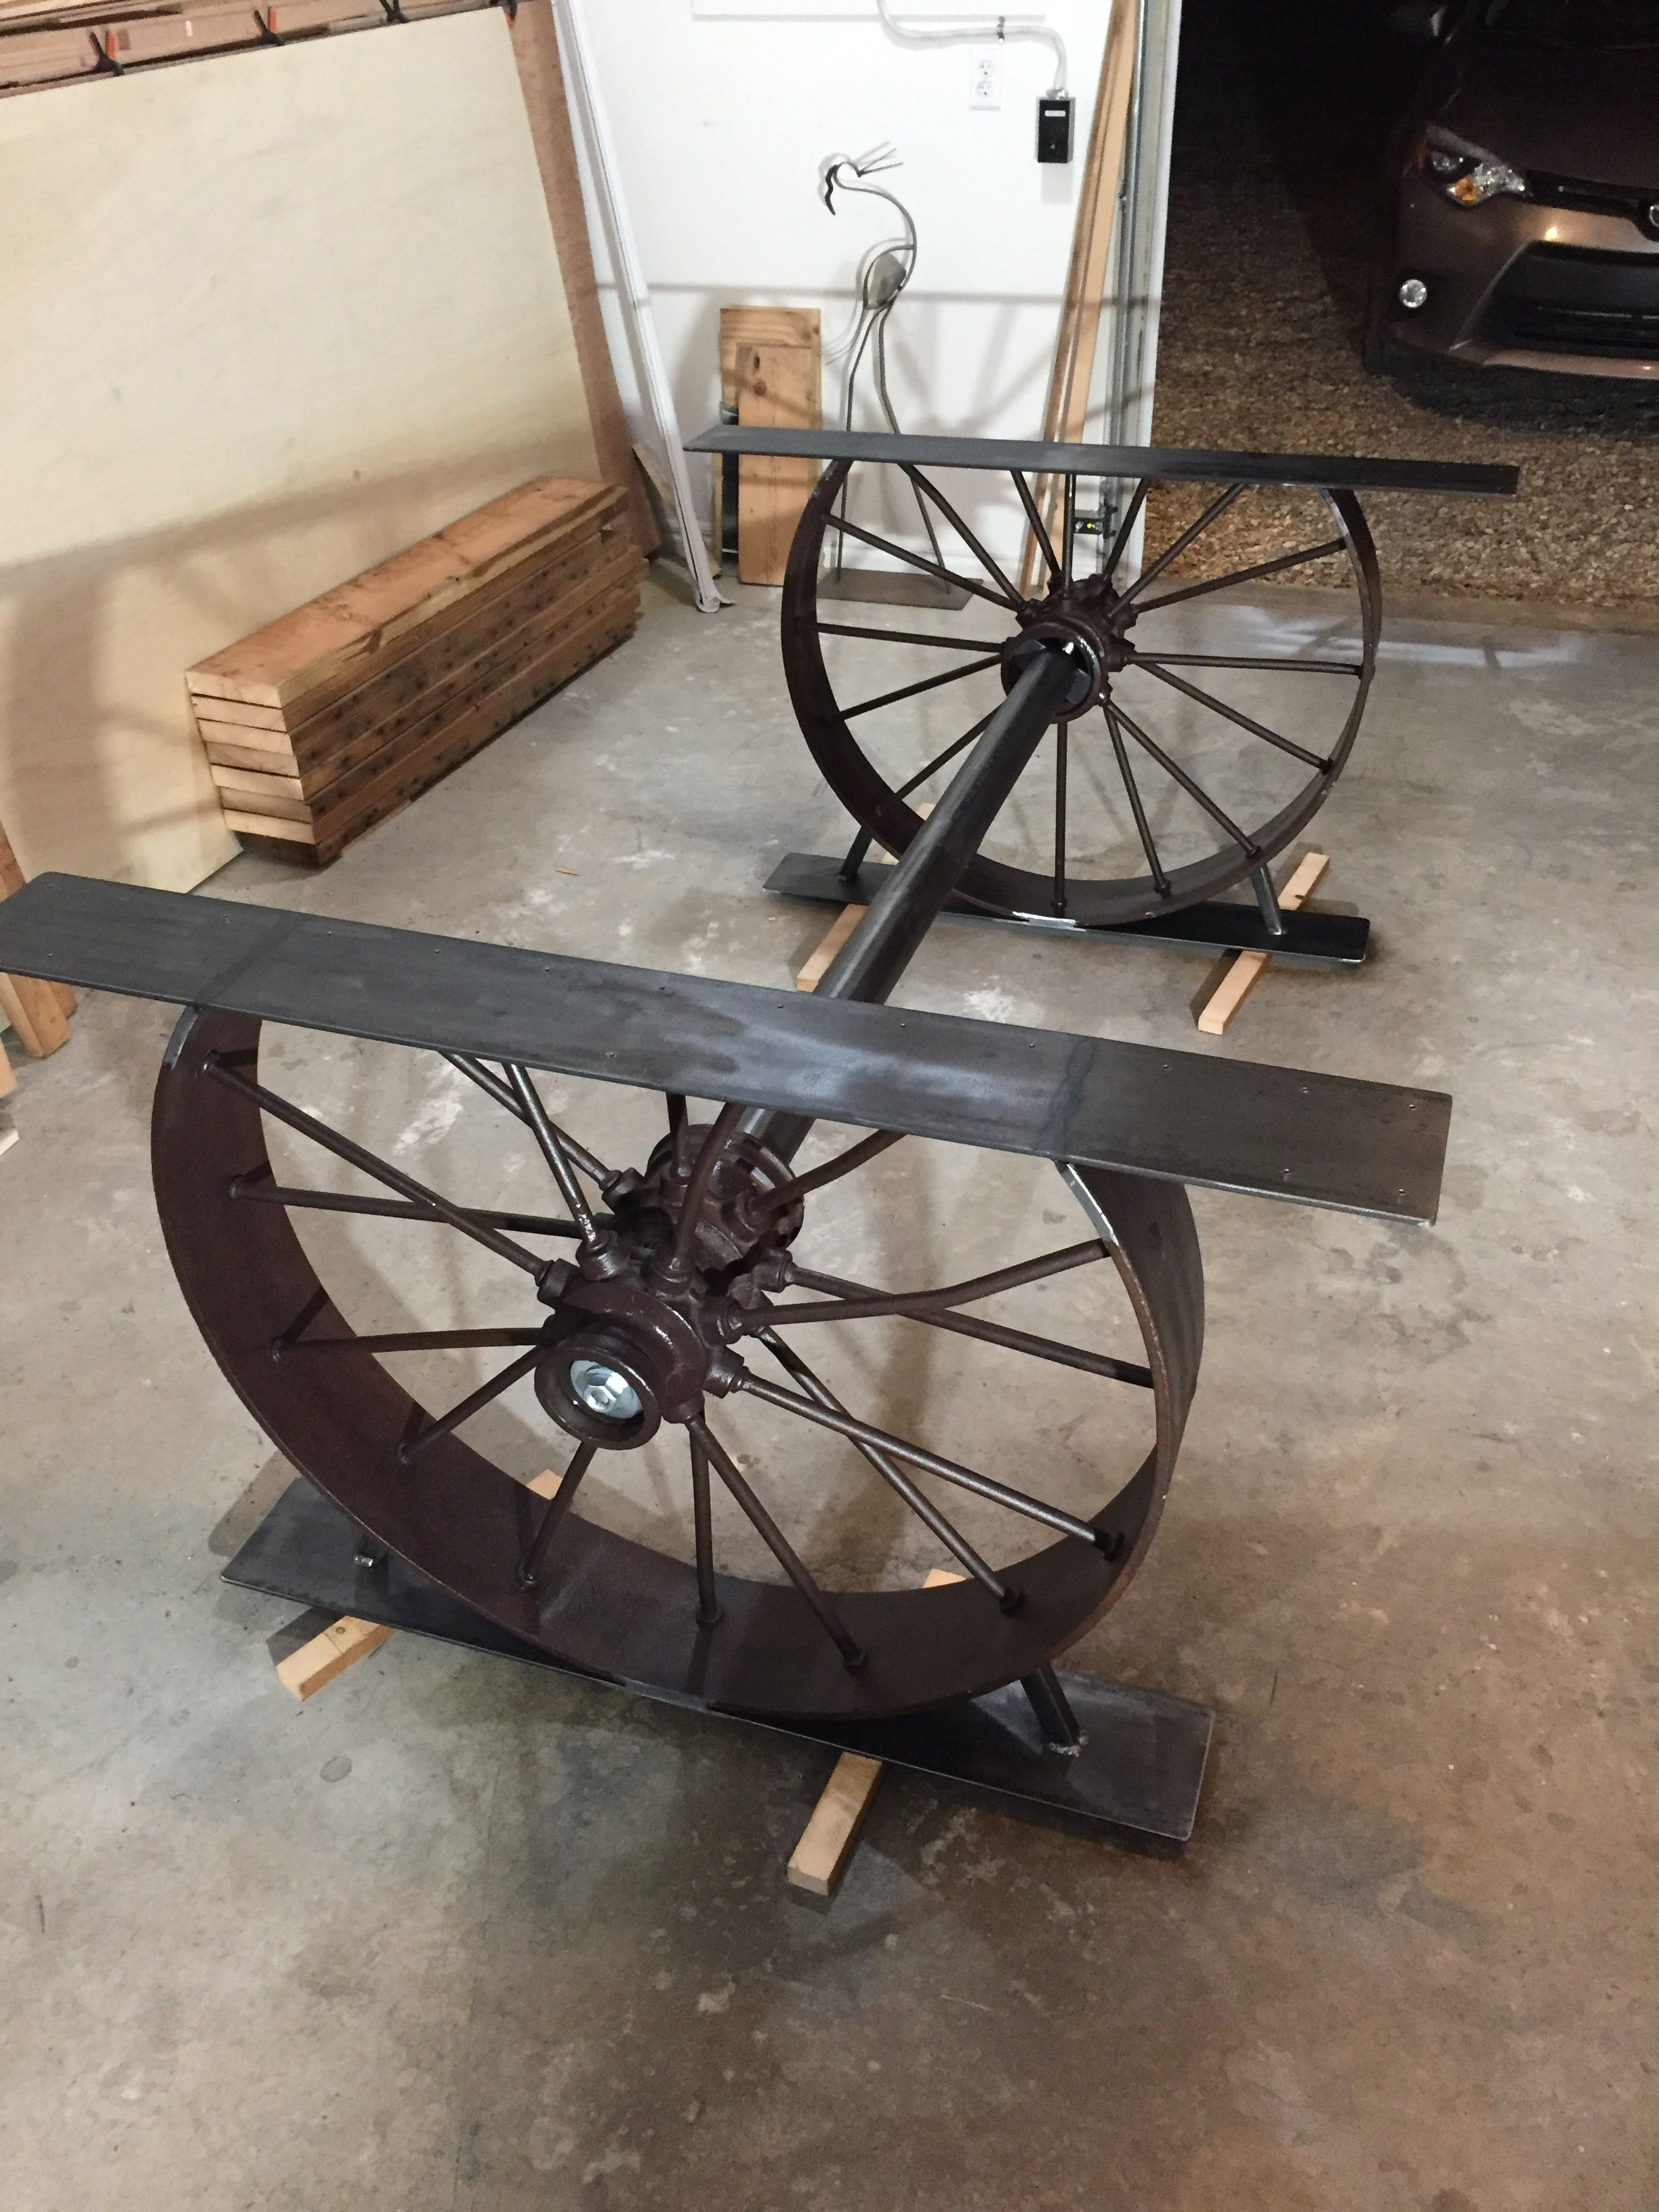 1920 Steel Wagon Wheels Cut Down And Welded 6 Wide Plate For Base Table Support Axle Was Fabricated With 3 This Set Up Weighs About 300 Lbs A